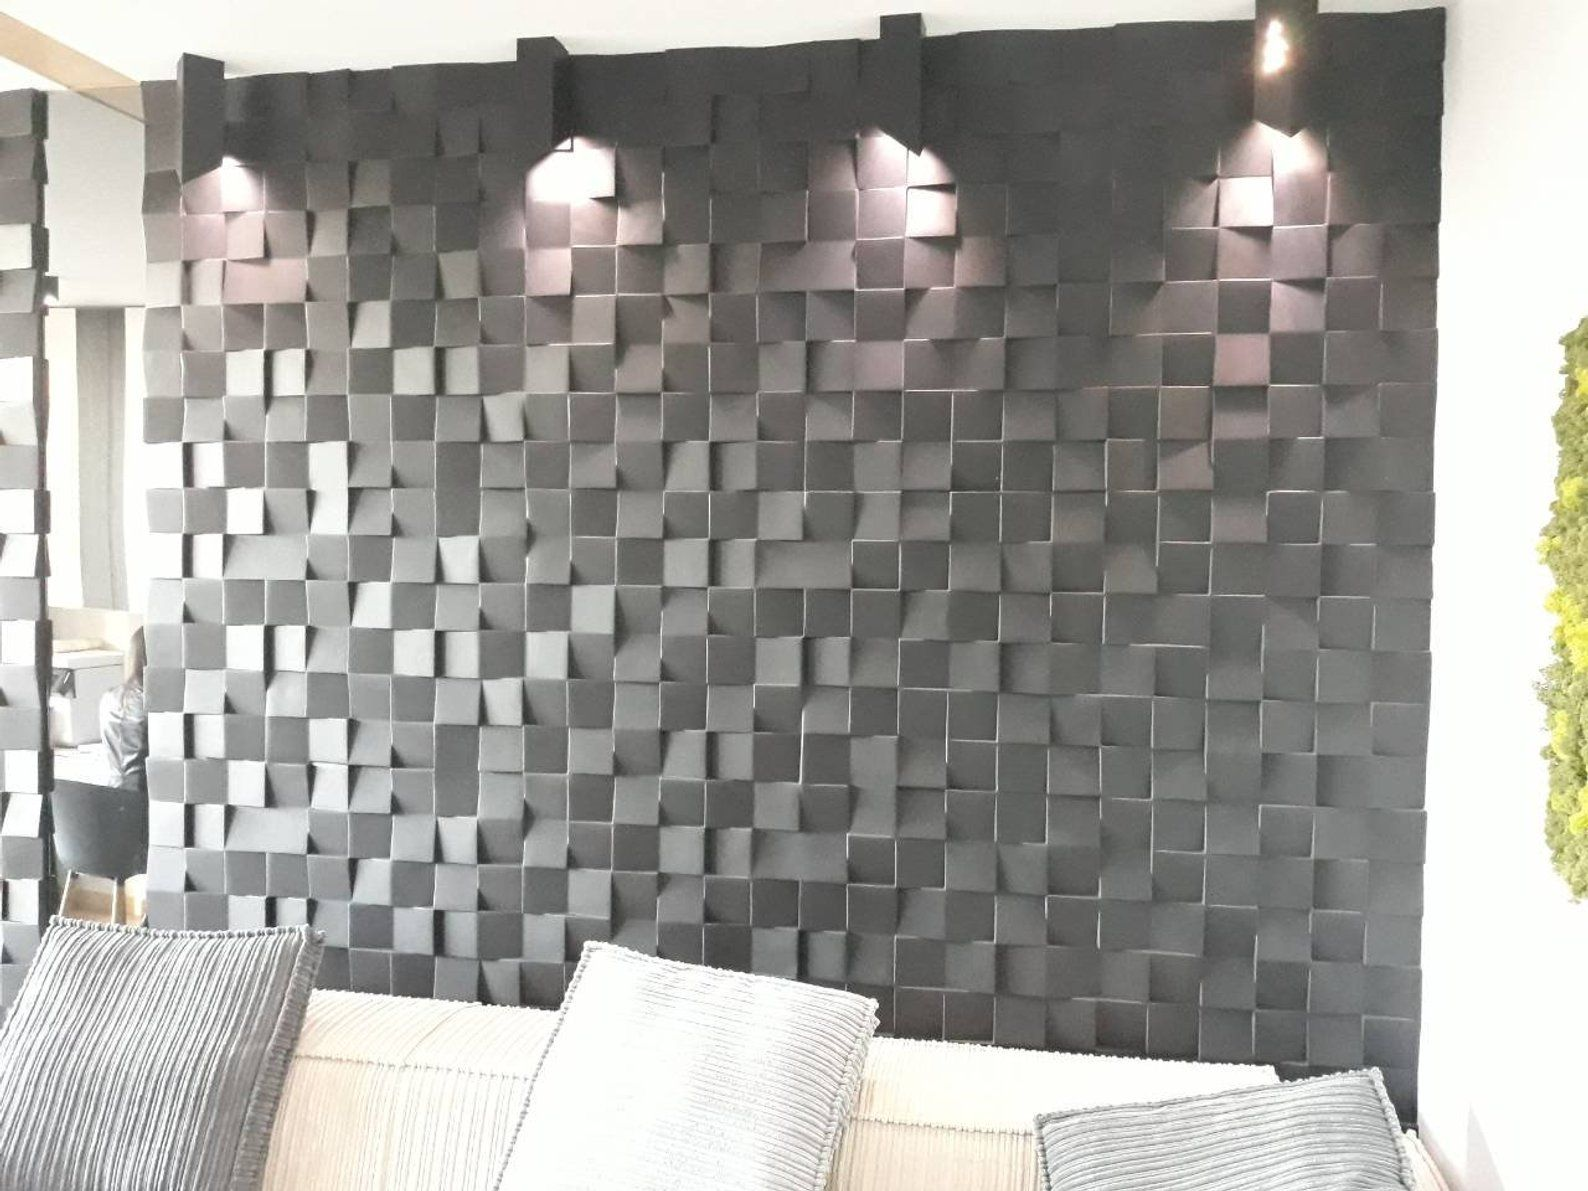 Plastic Mold 3d Wall Panels For Plaster Gypsum Or Concrete Etsy Wall Panel Molding Modern Wall Paneling Textured Wall Panels